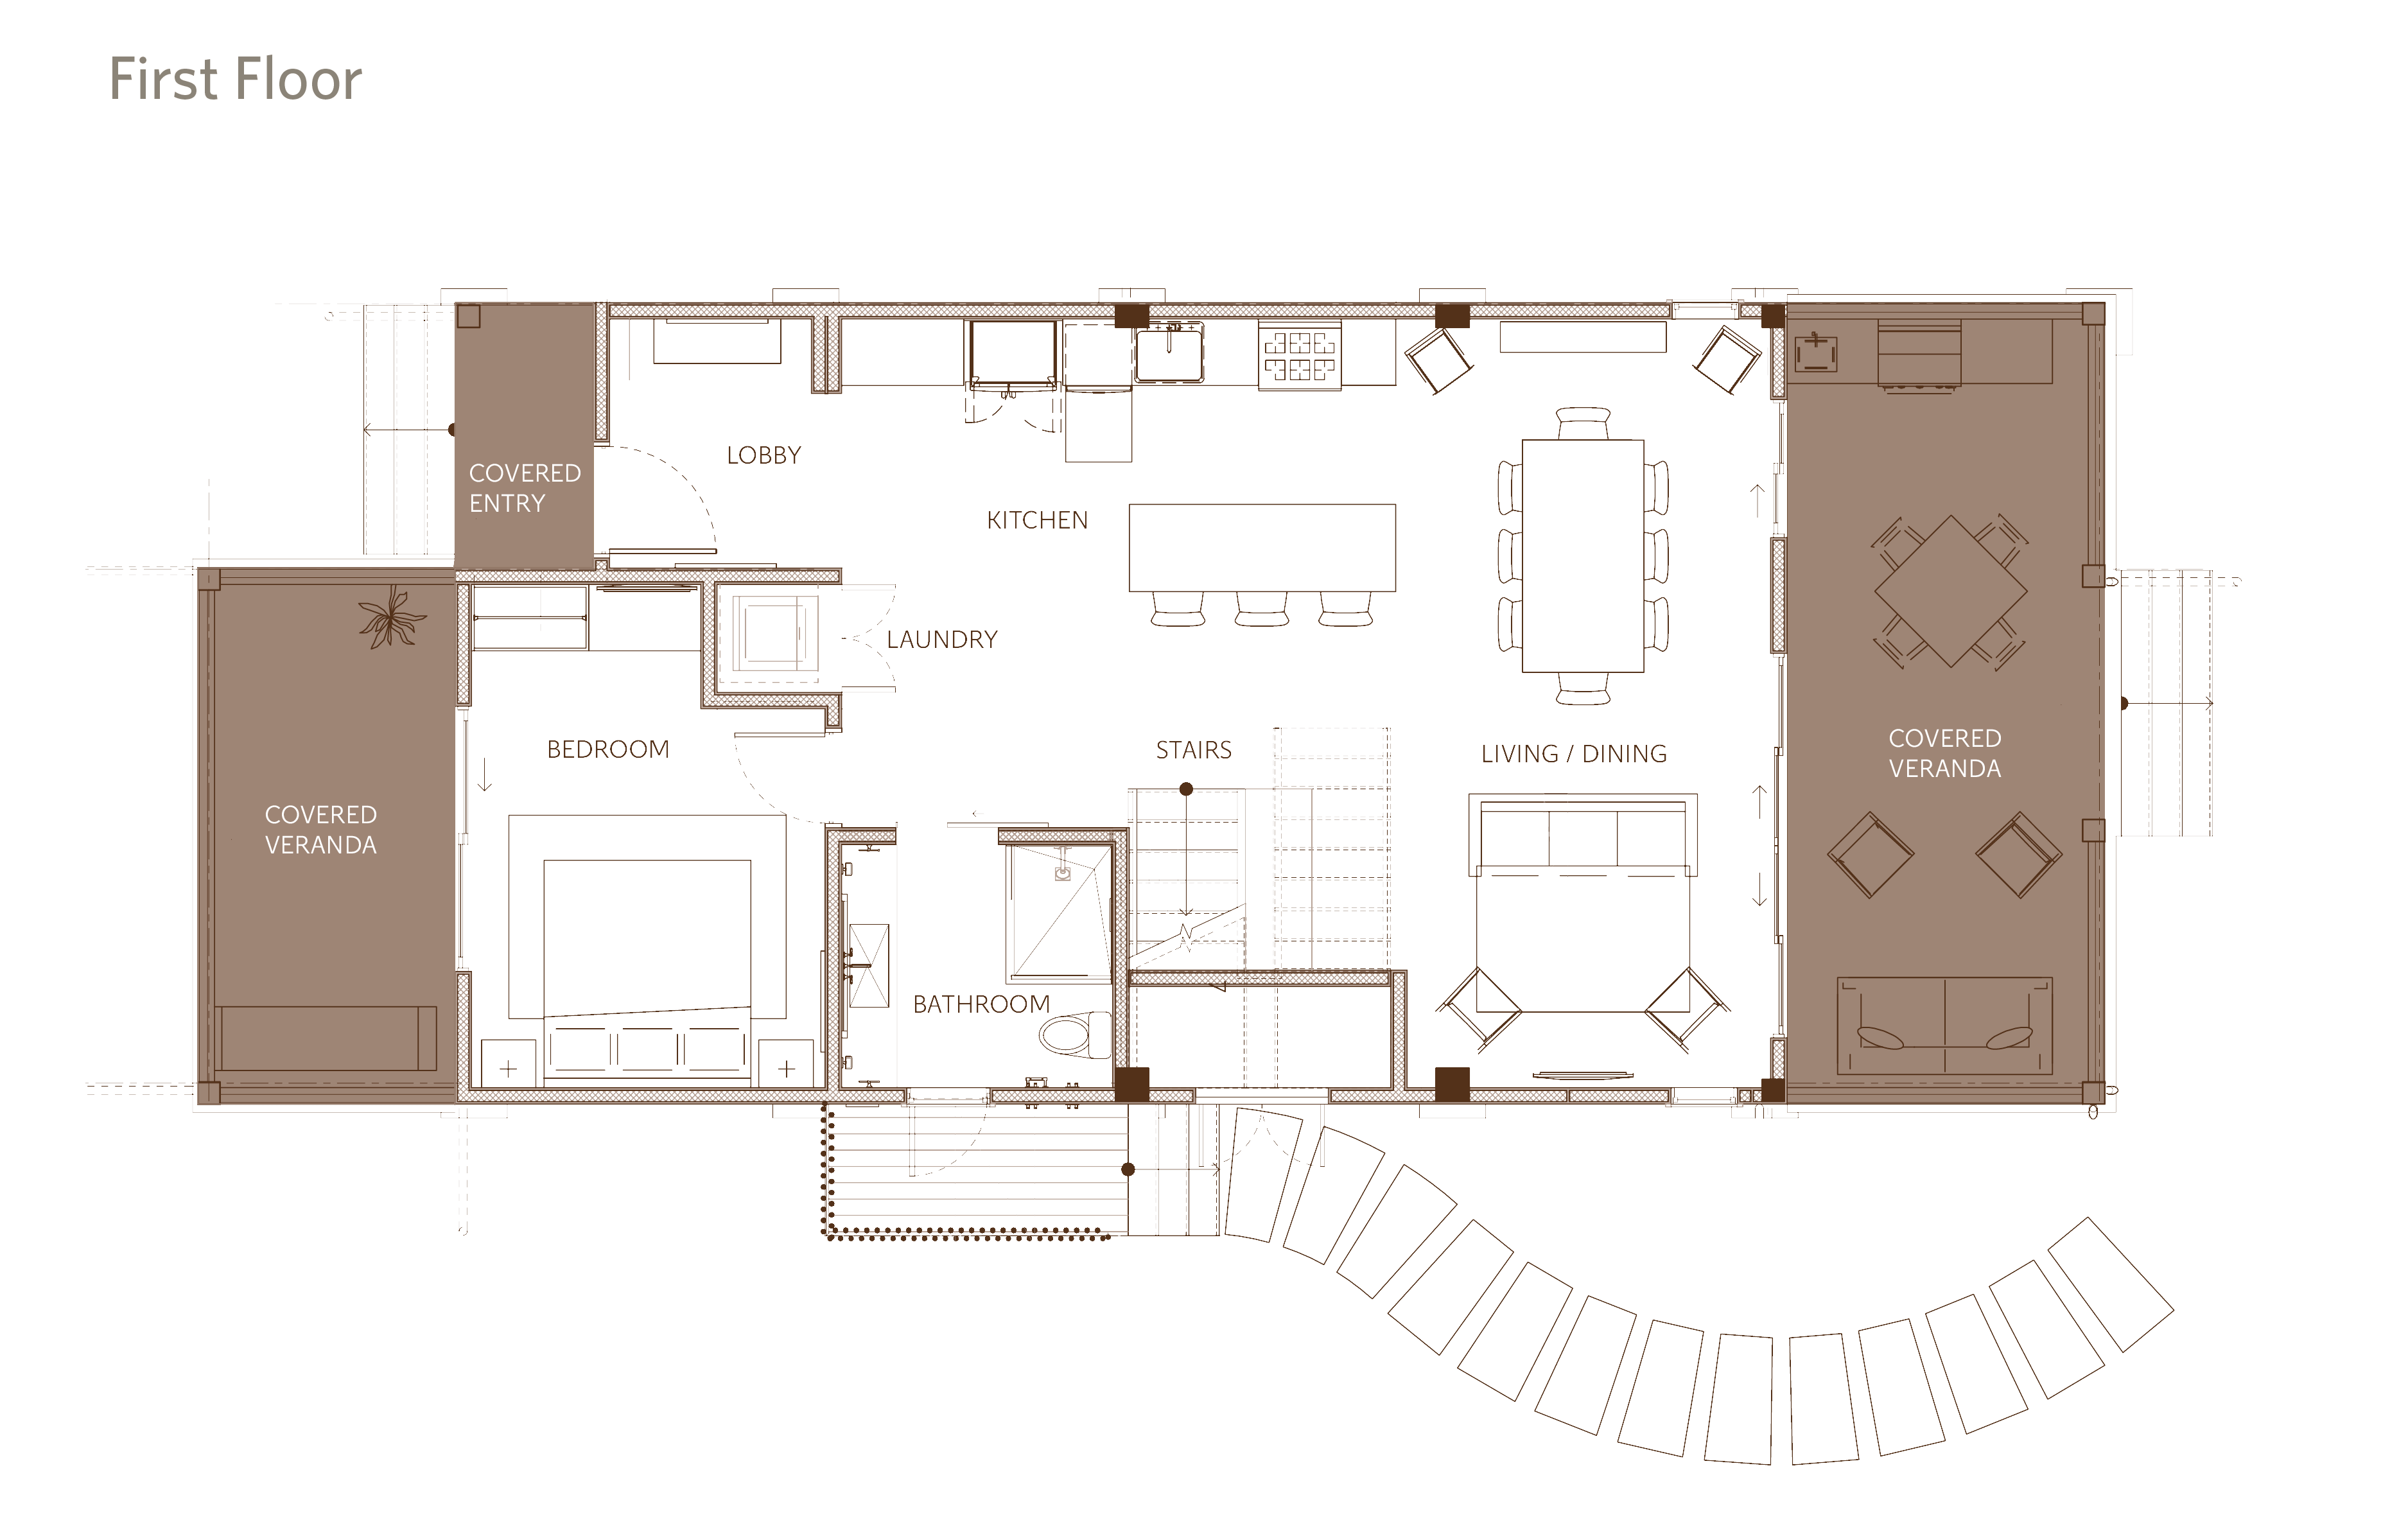 Beach Villa Floor Plan - 3BR - 1st floor (1)